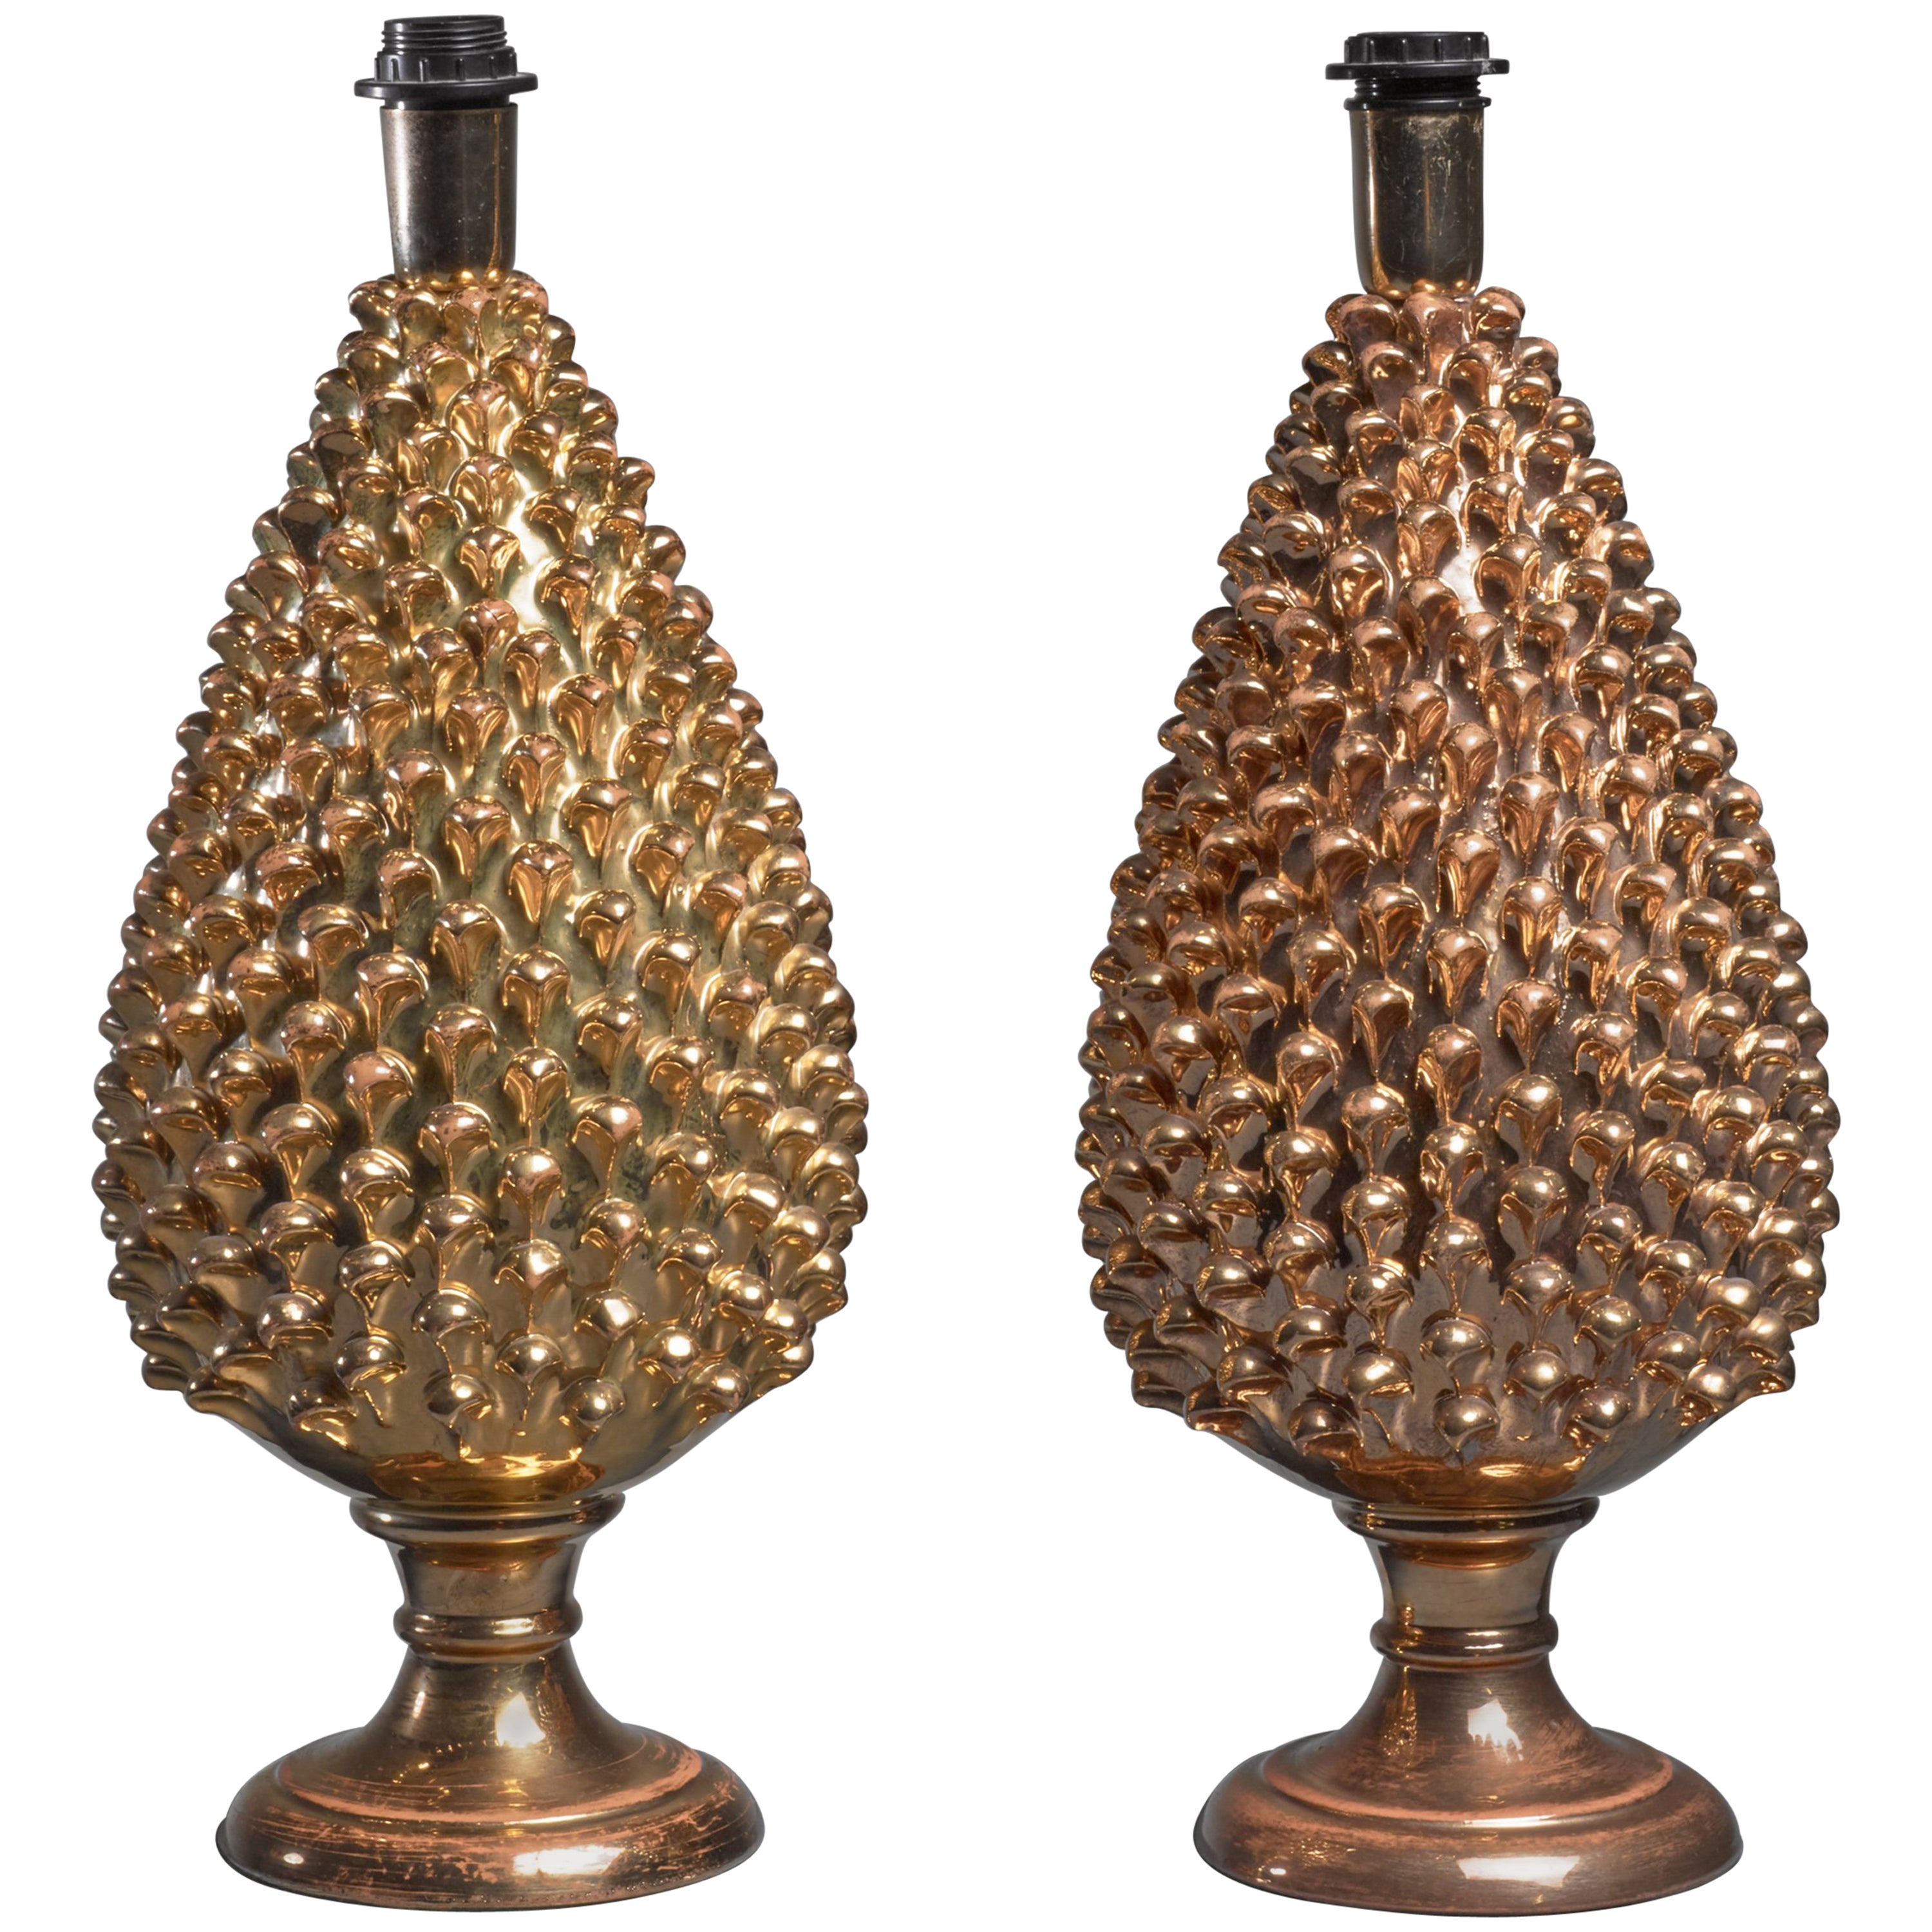 Mangani Pair of Painted Glass Table Lamps, Italy, 1960s